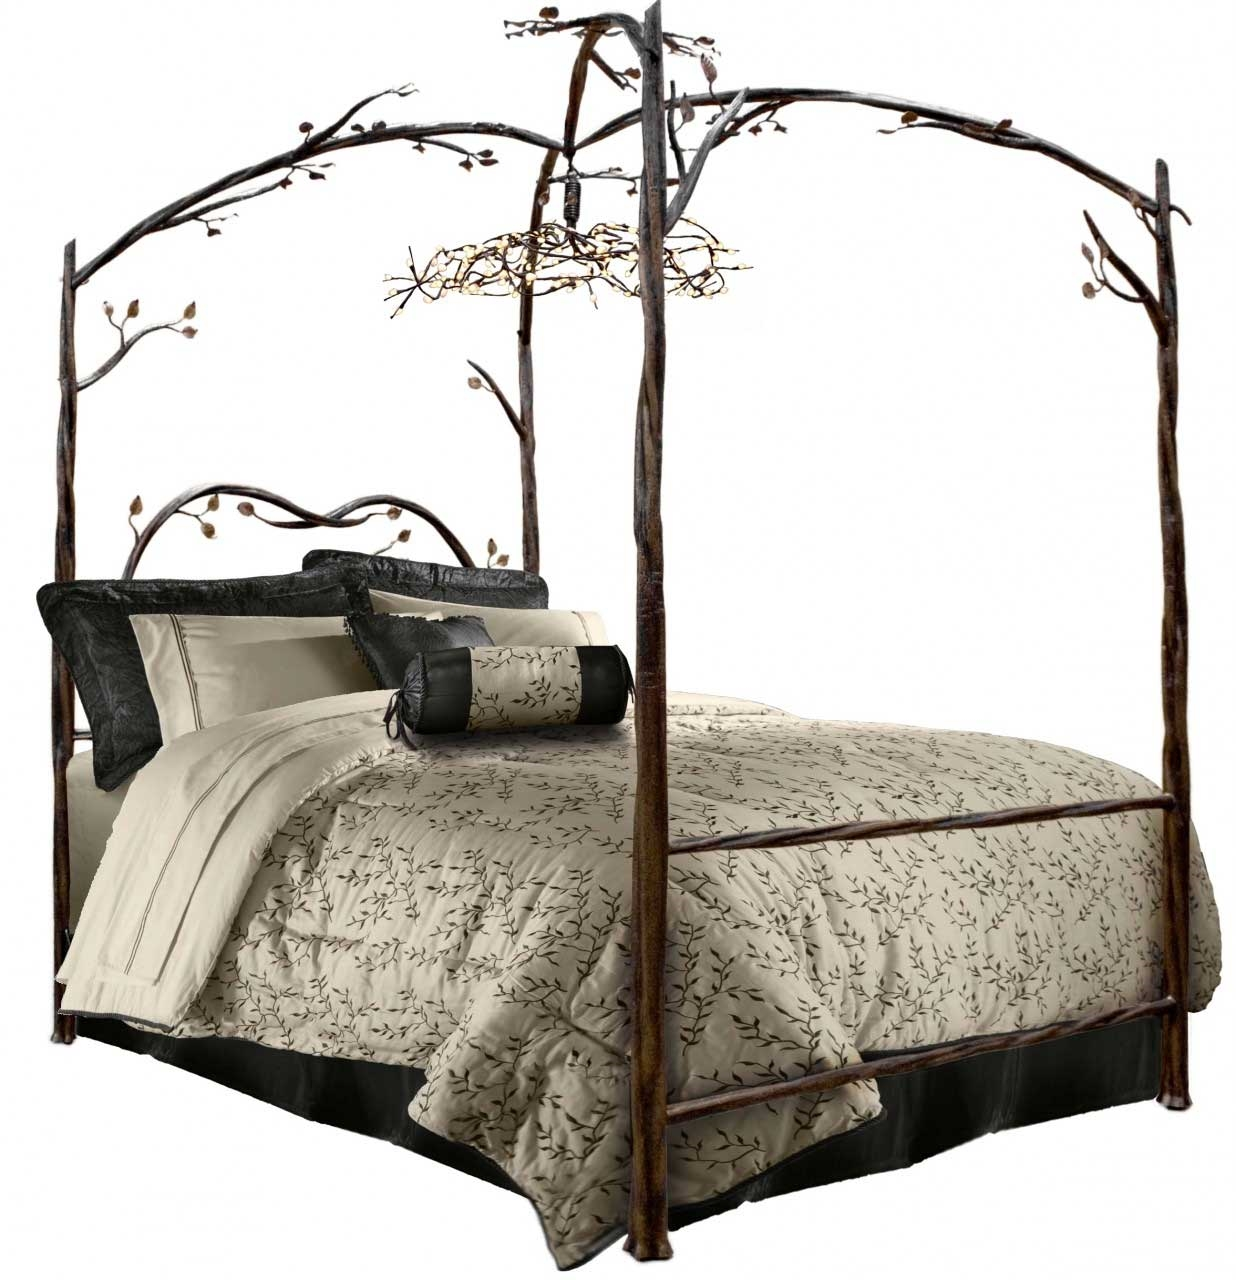 limelight beds black metal bed htm omega buy frame